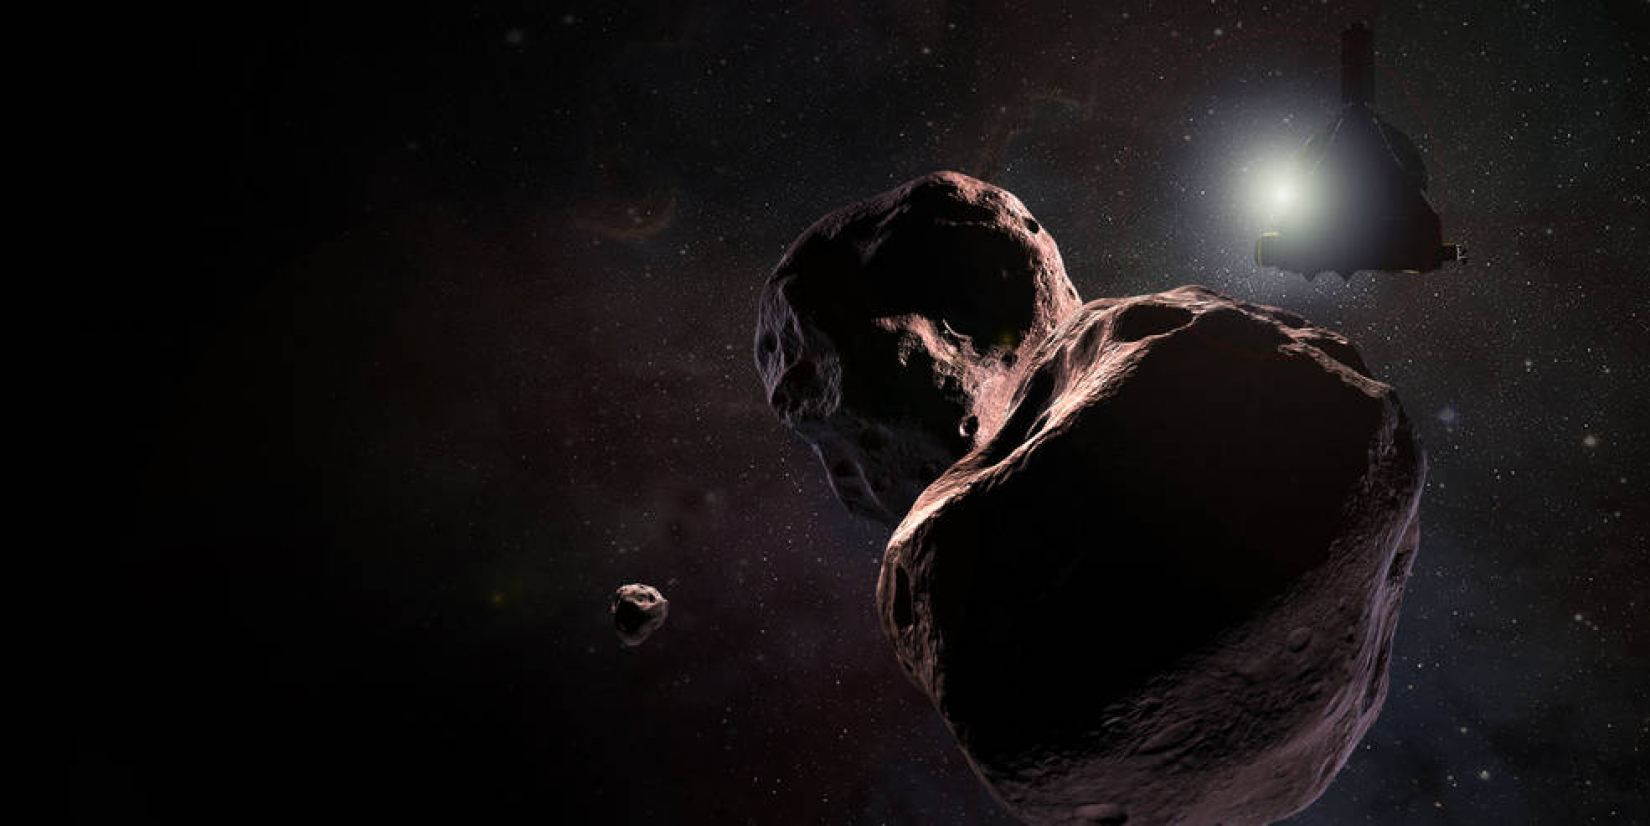 New Horizons approaches MU69